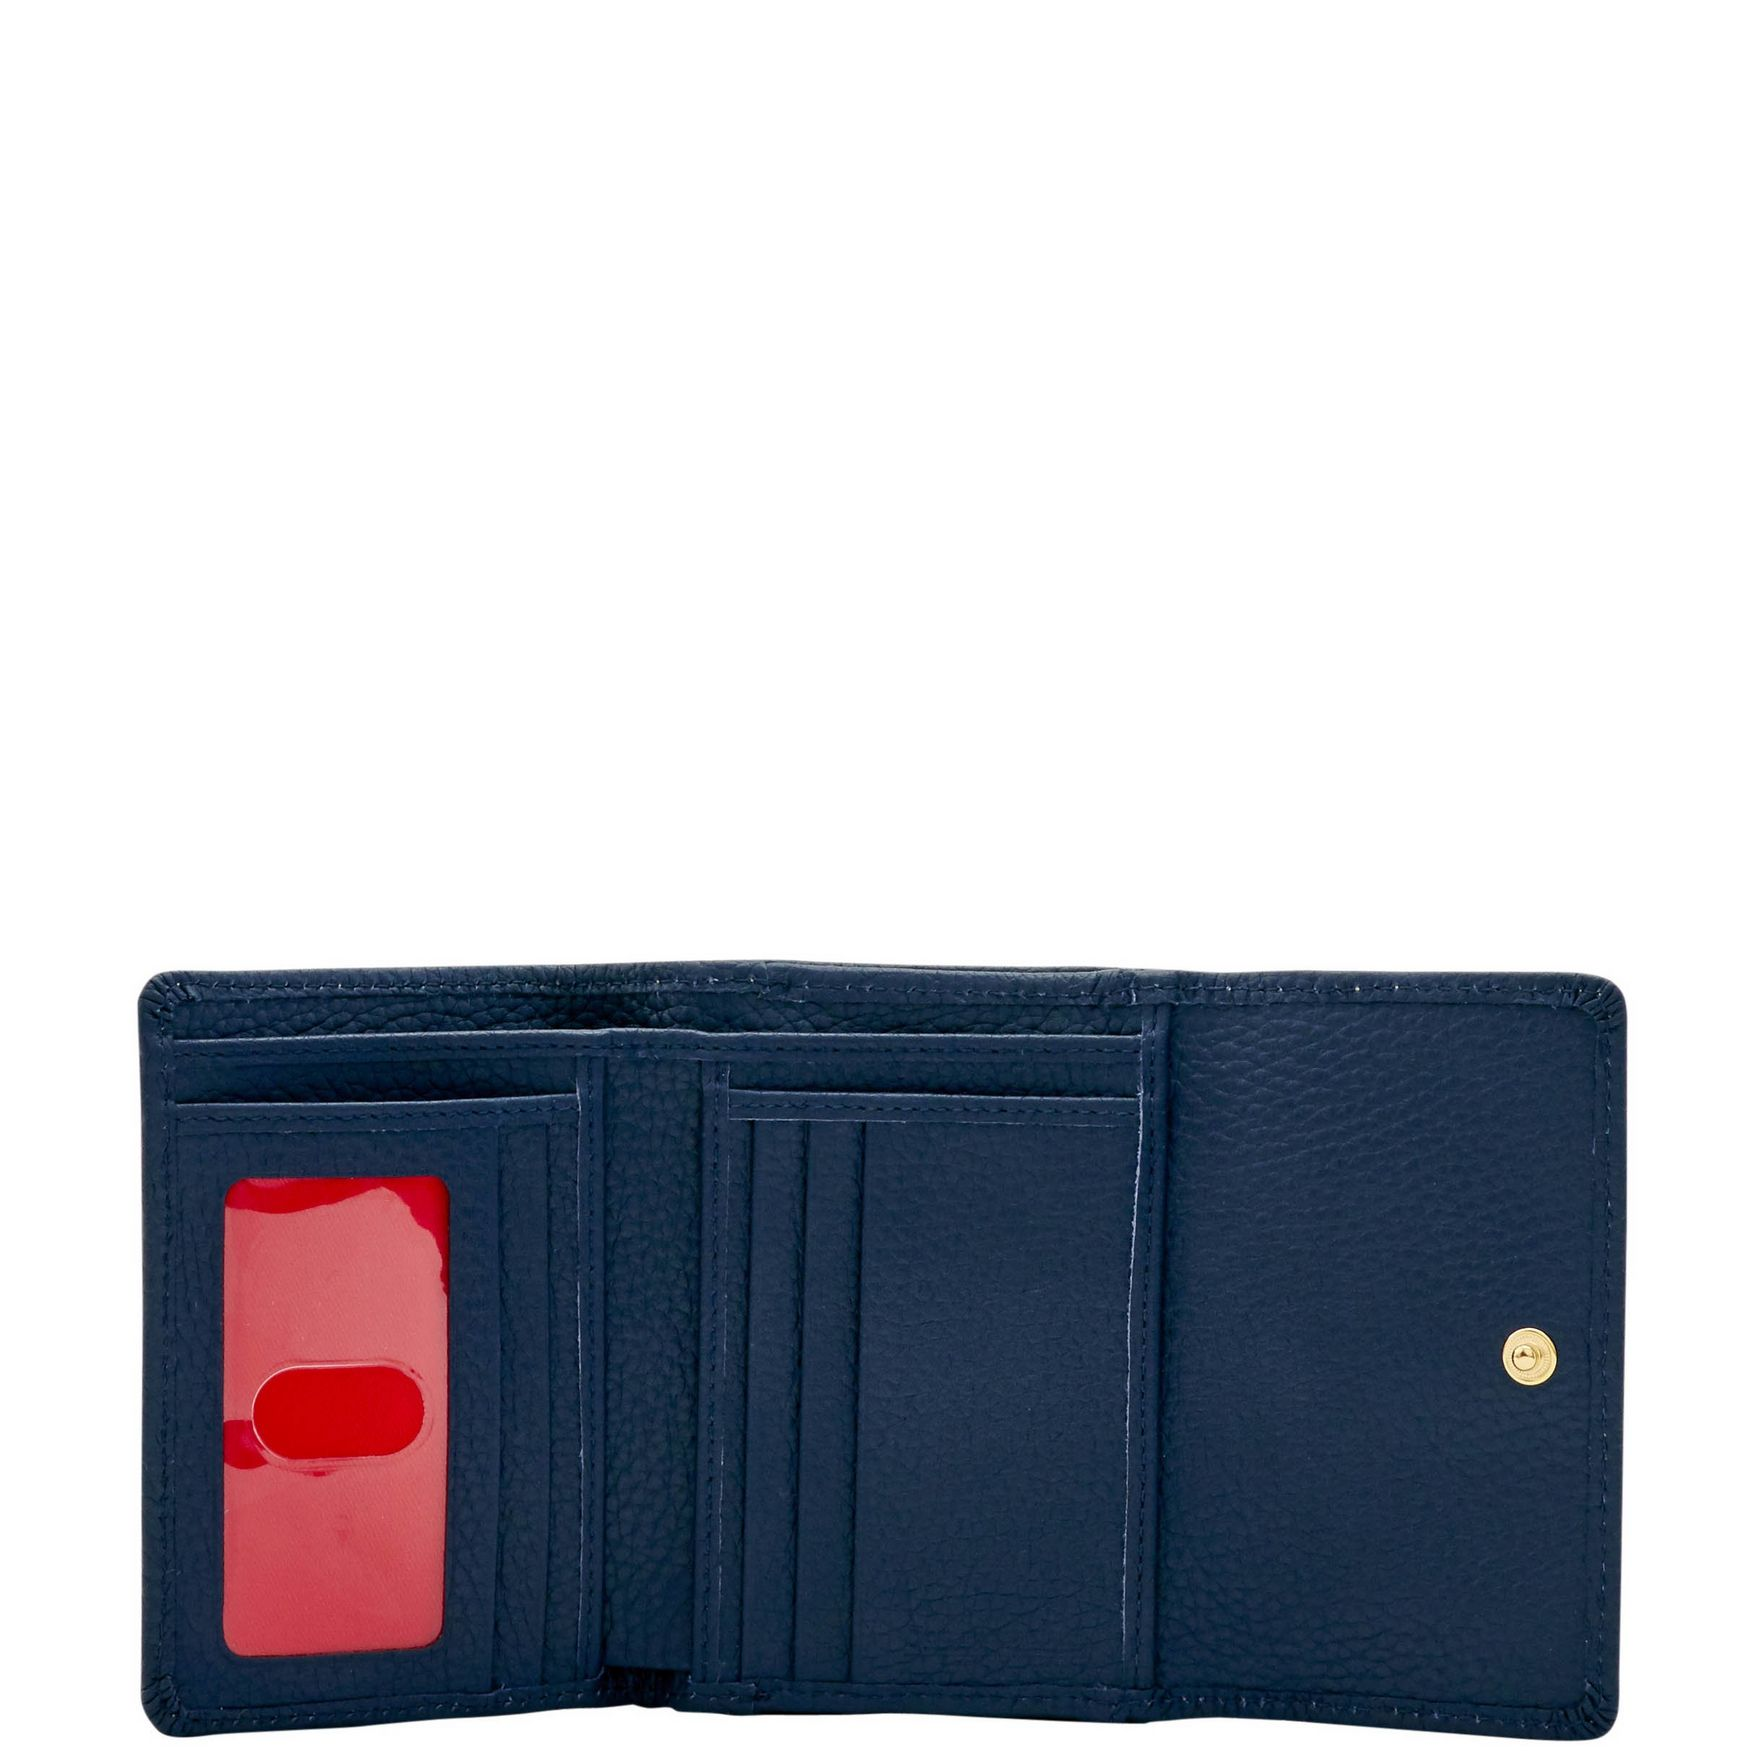 Dooney-amp-Bourke-Pebble-Grain-Framed-Credit-Card-Wallet thumbnail 29